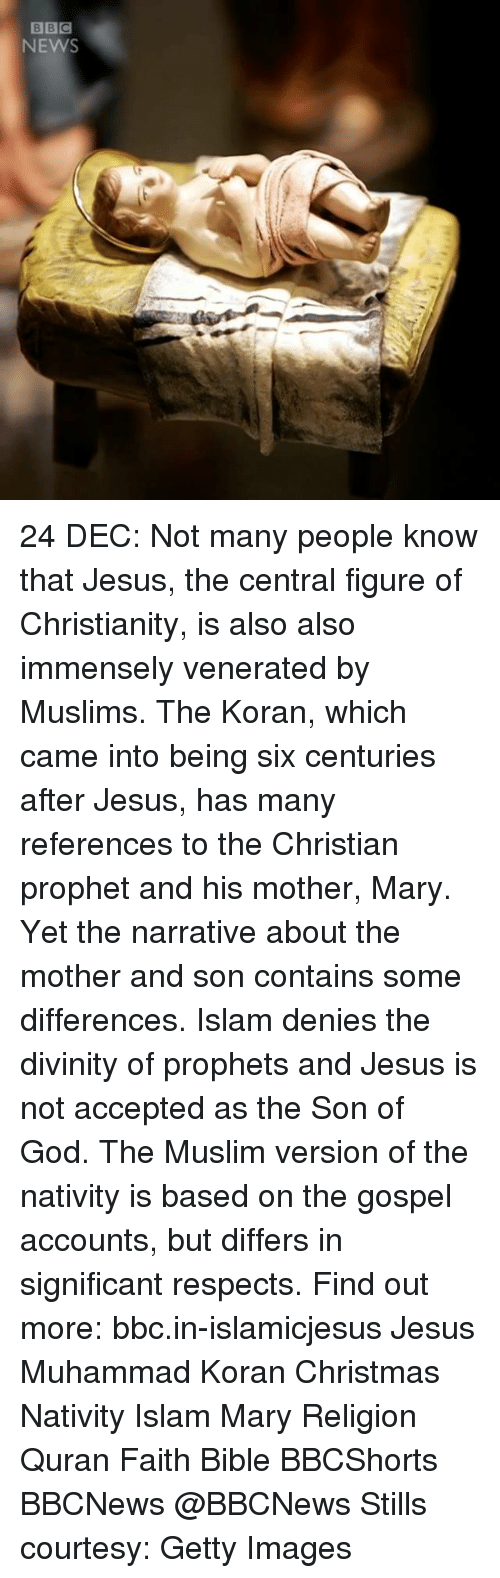 The Narrator: BBC  NEWS 24 DEC: Not many people know that Jesus, the central figure of Christianity, is also also immensely venerated by Muslims. The Koran, which came into being six centuries after Jesus, has many references to the Christian prophet and his mother, Mary. Yet the narrative about the mother and son contains some differences. Islam denies the divinity of prophets and Jesus is not accepted as the Son of God. The Muslim version of the nativity is based on the gospel accounts, but differs in significant respects. Find out more: bbc.in-islamicjesus Jesus Muhammad Koran Christmas Nativity Islam Mary Religion Quran Faith Bible BBCShorts BBCNews @BBCNews Stills courtesy: Getty Images